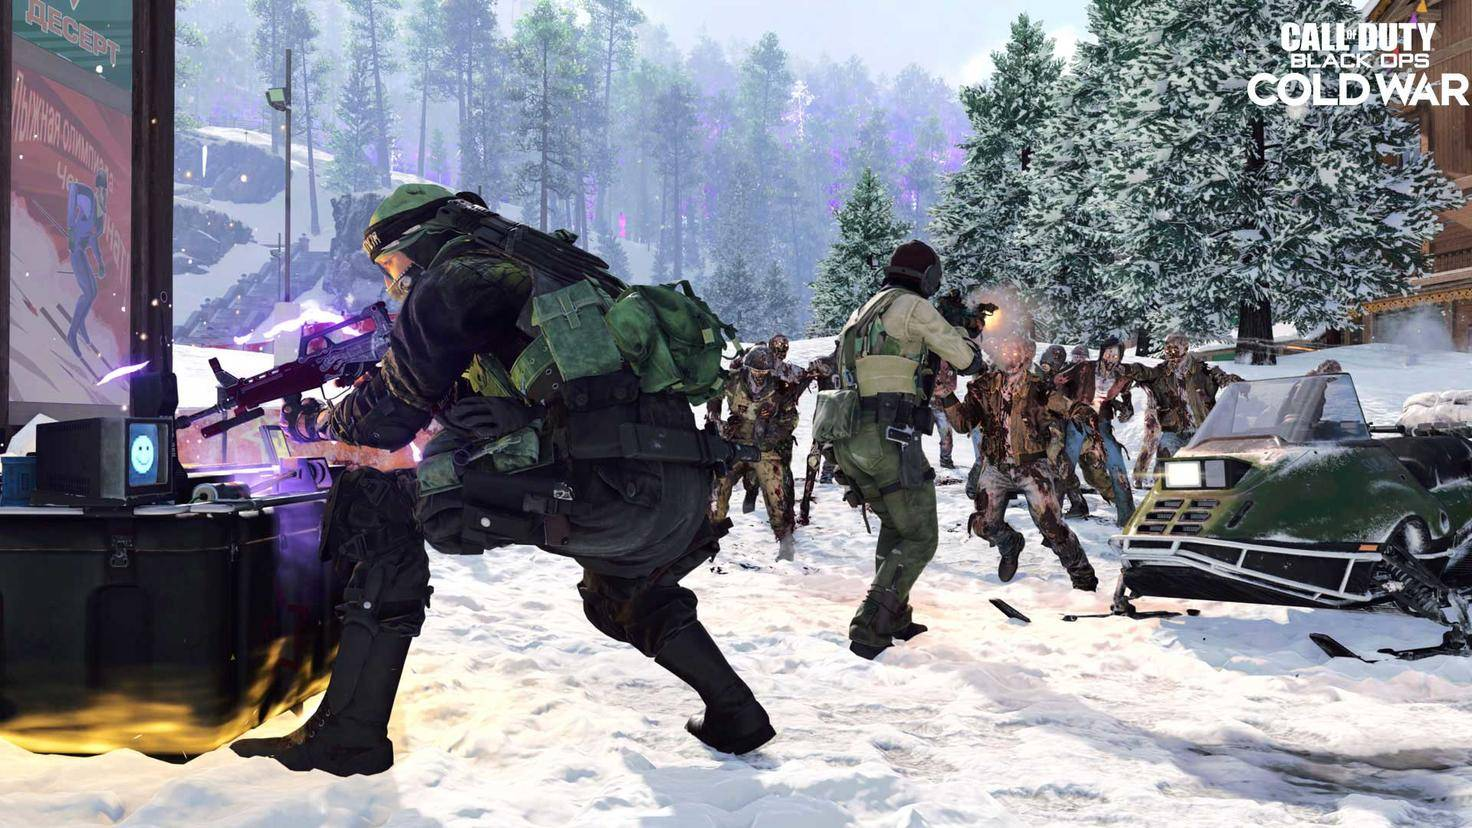 call-of-duty-black-ops-cold-war-season-2-zombies-outbreak